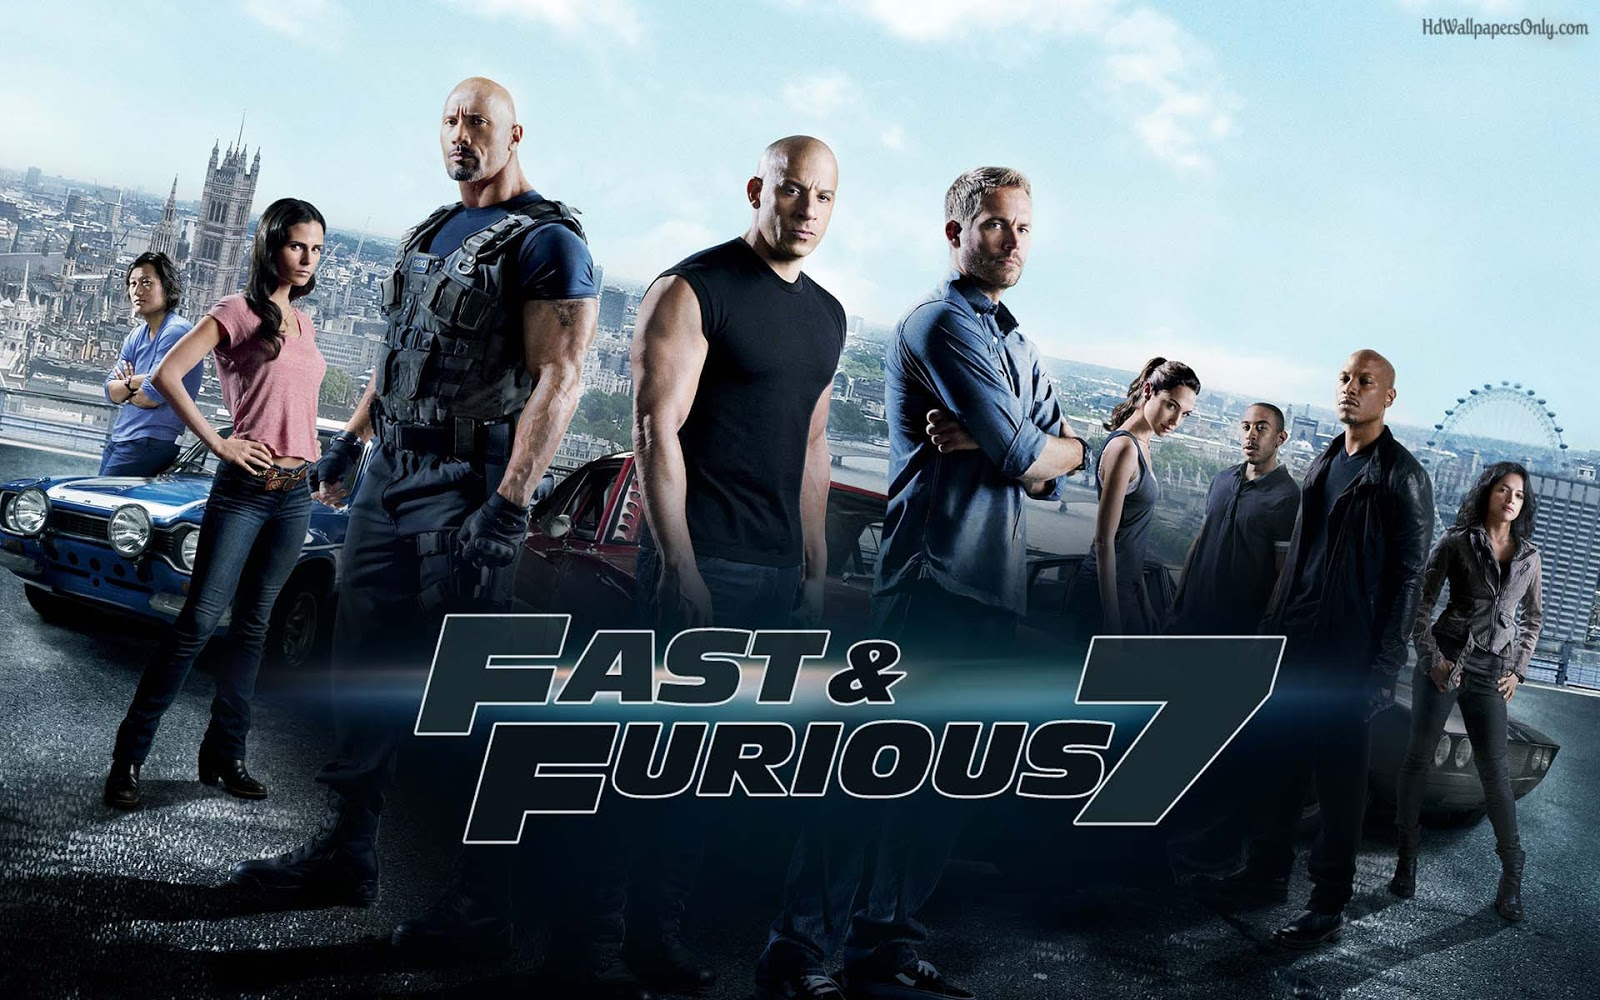 fast and furious 7 extended bluray 720p 1080p subtitle indonesia ccyberlife. Black Bedroom Furniture Sets. Home Design Ideas